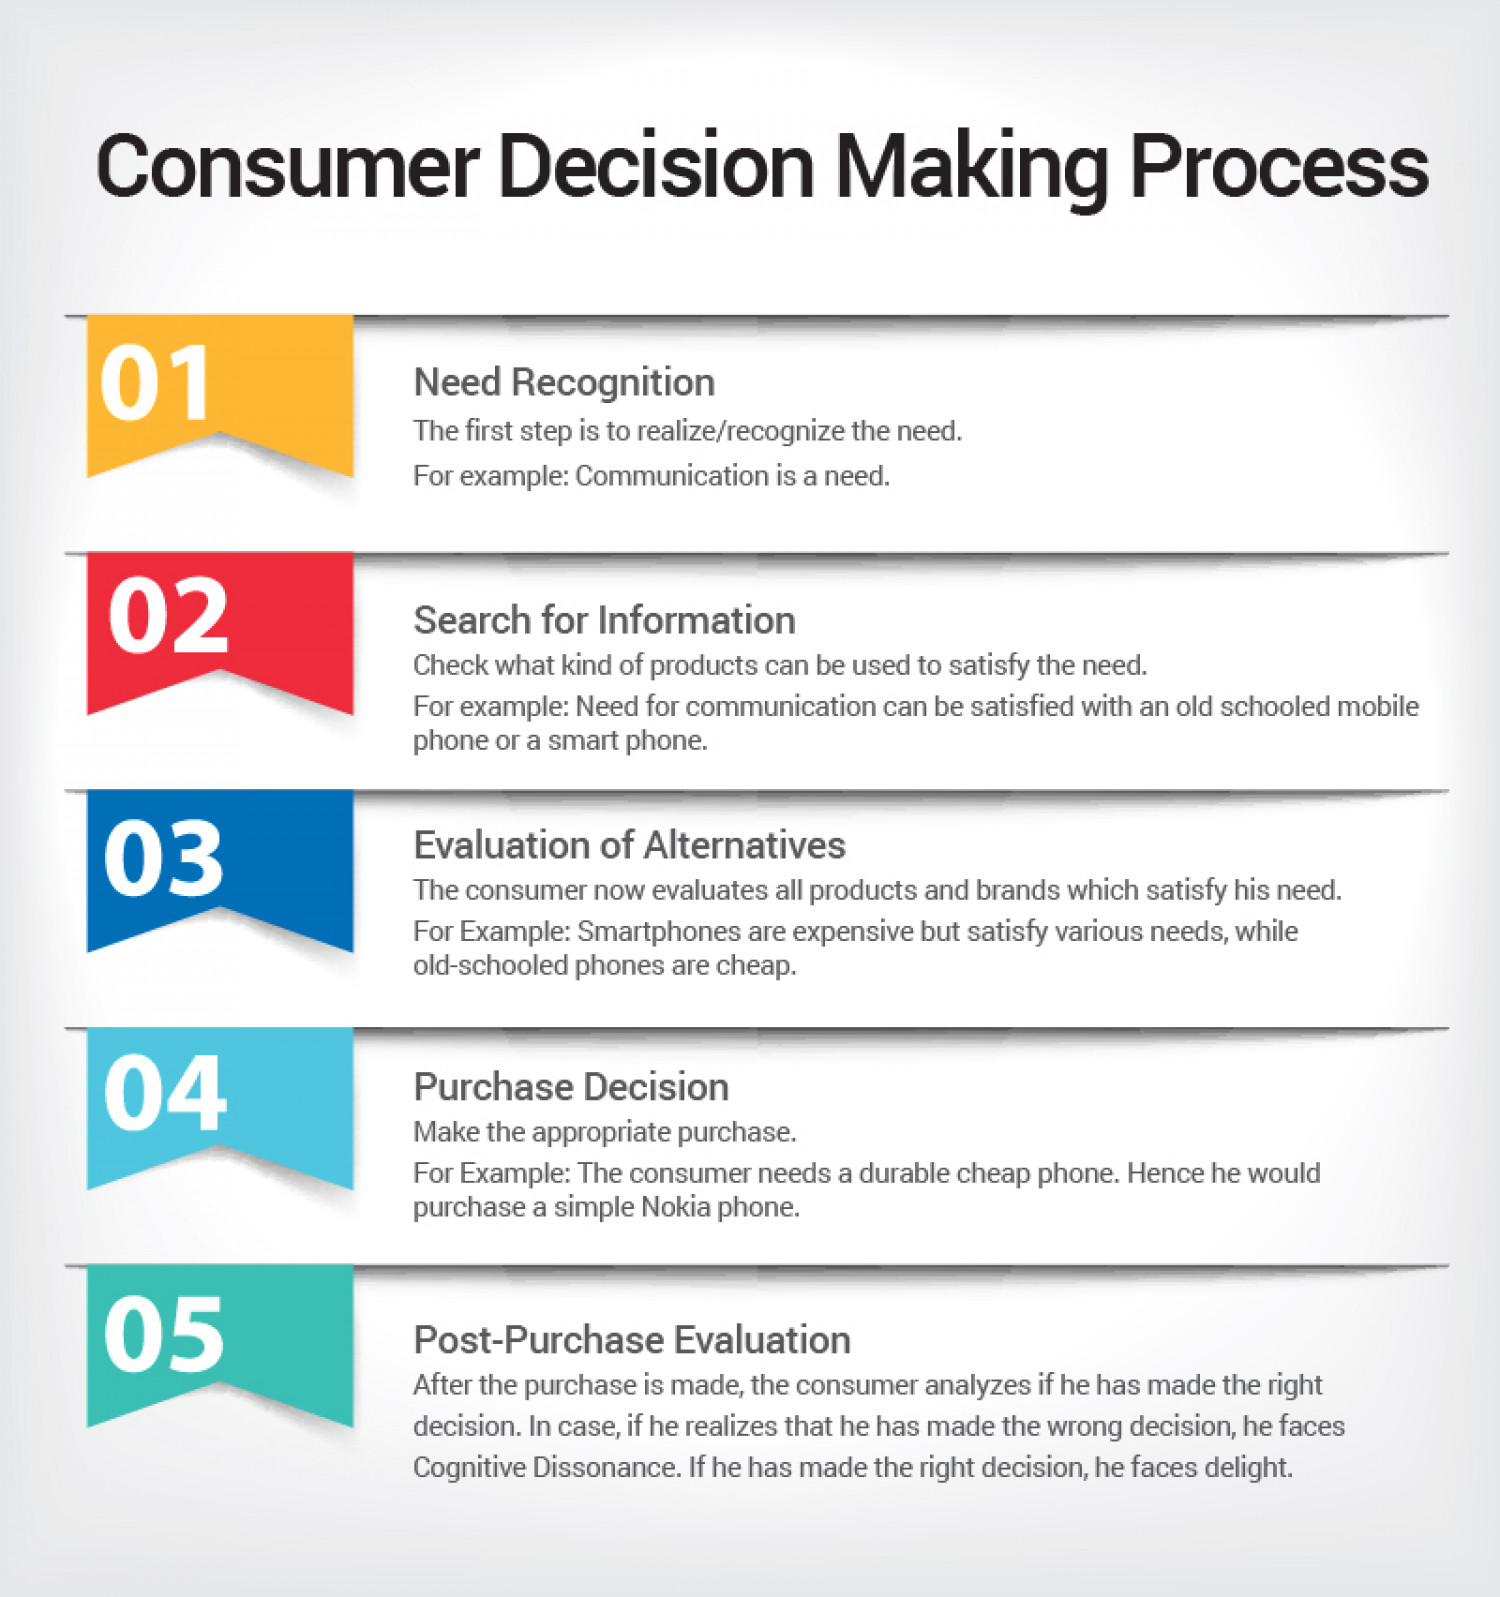 consumer decision making process ly consumer decision making process infographic